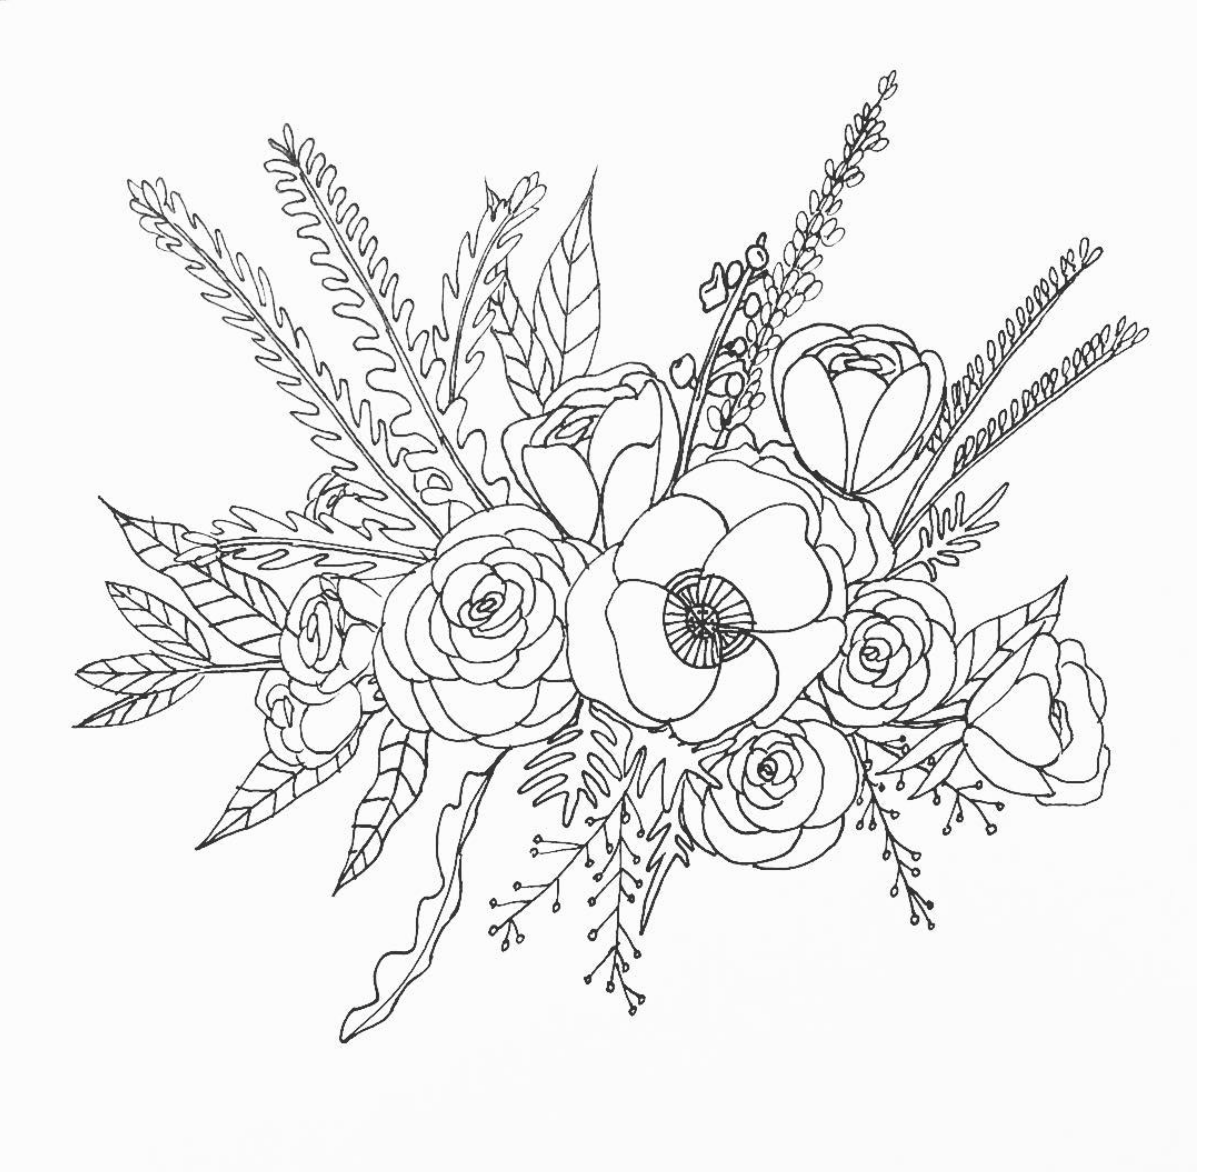 Flower Bouquet Line Drawing : Line drawing flower illustration floral bouquet art